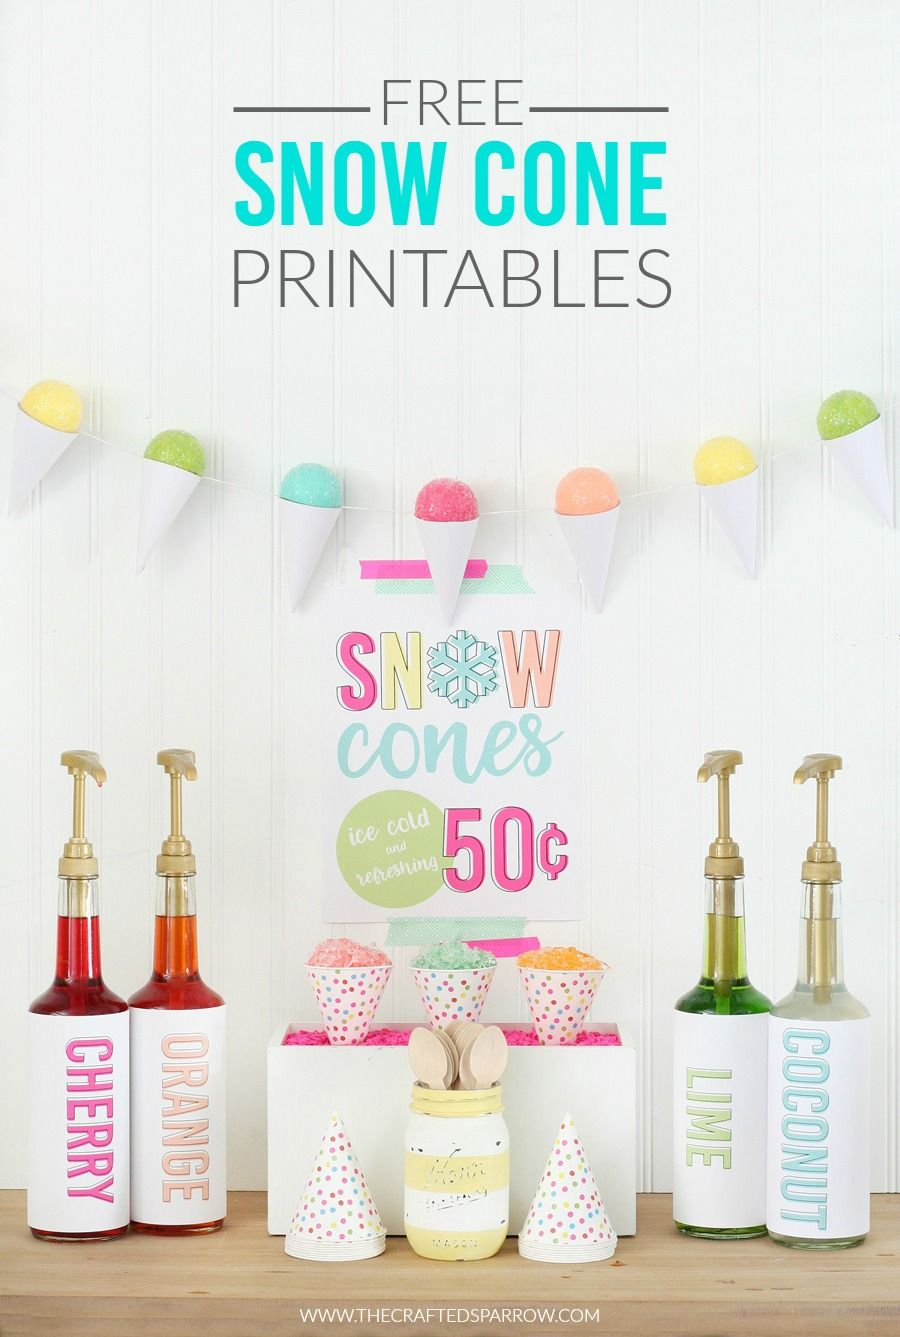 Free Snow Cone Printables Crafted Sparrow Printables Pinterest